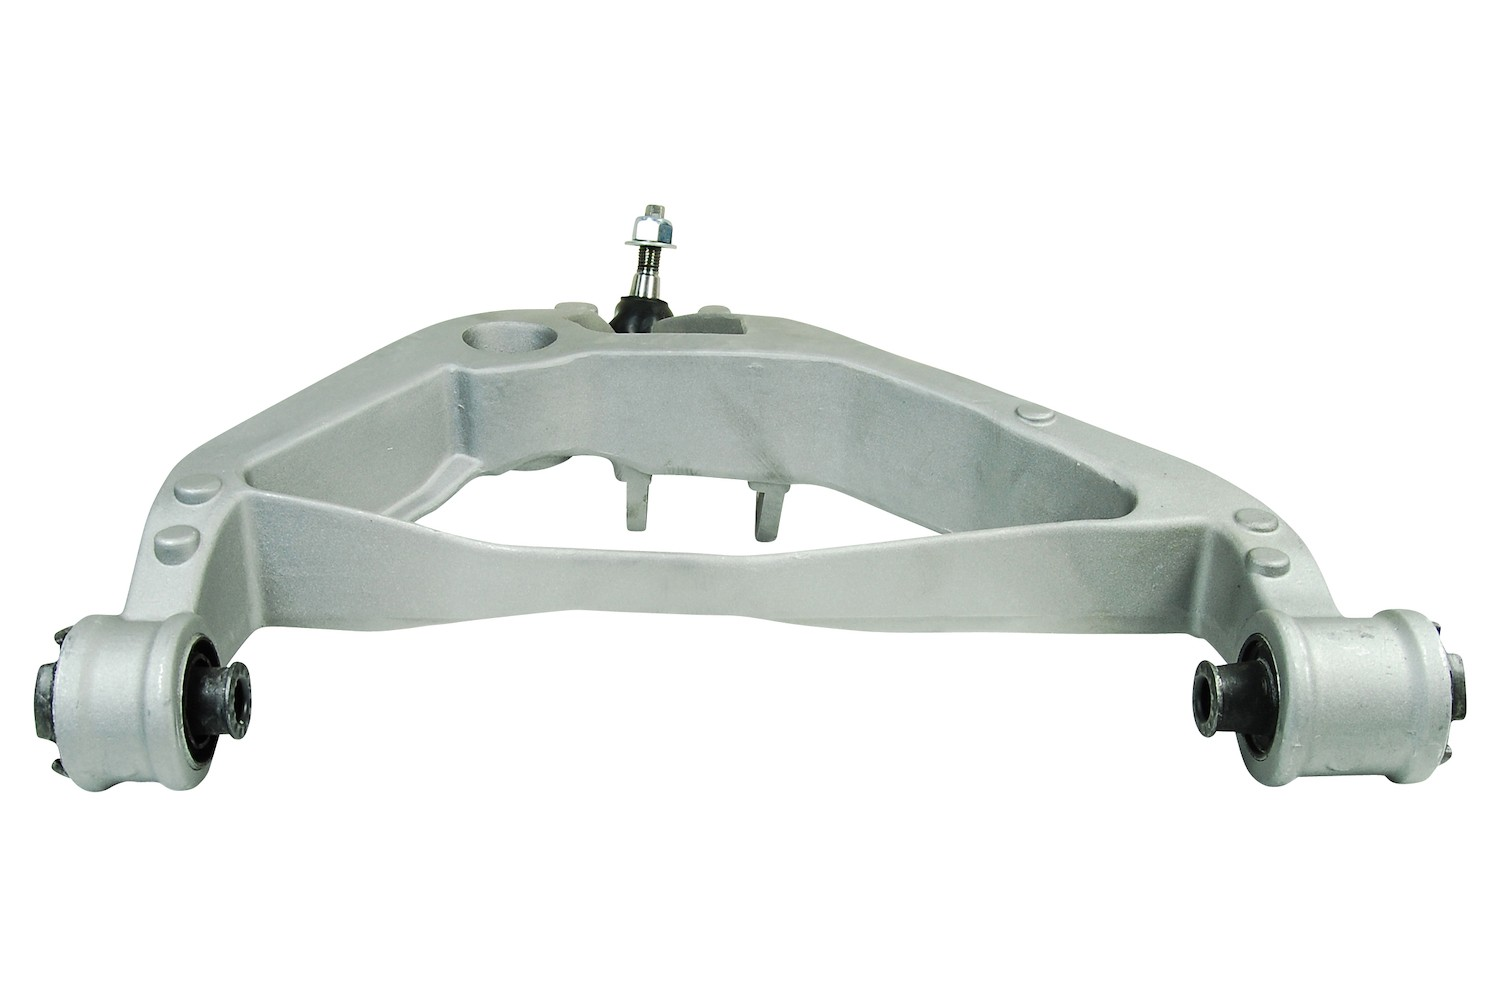 Lincoln Models Dorman 521-129 Front Left Upper Suspension Control Arm and Ball Joint Assembly for Select Ford